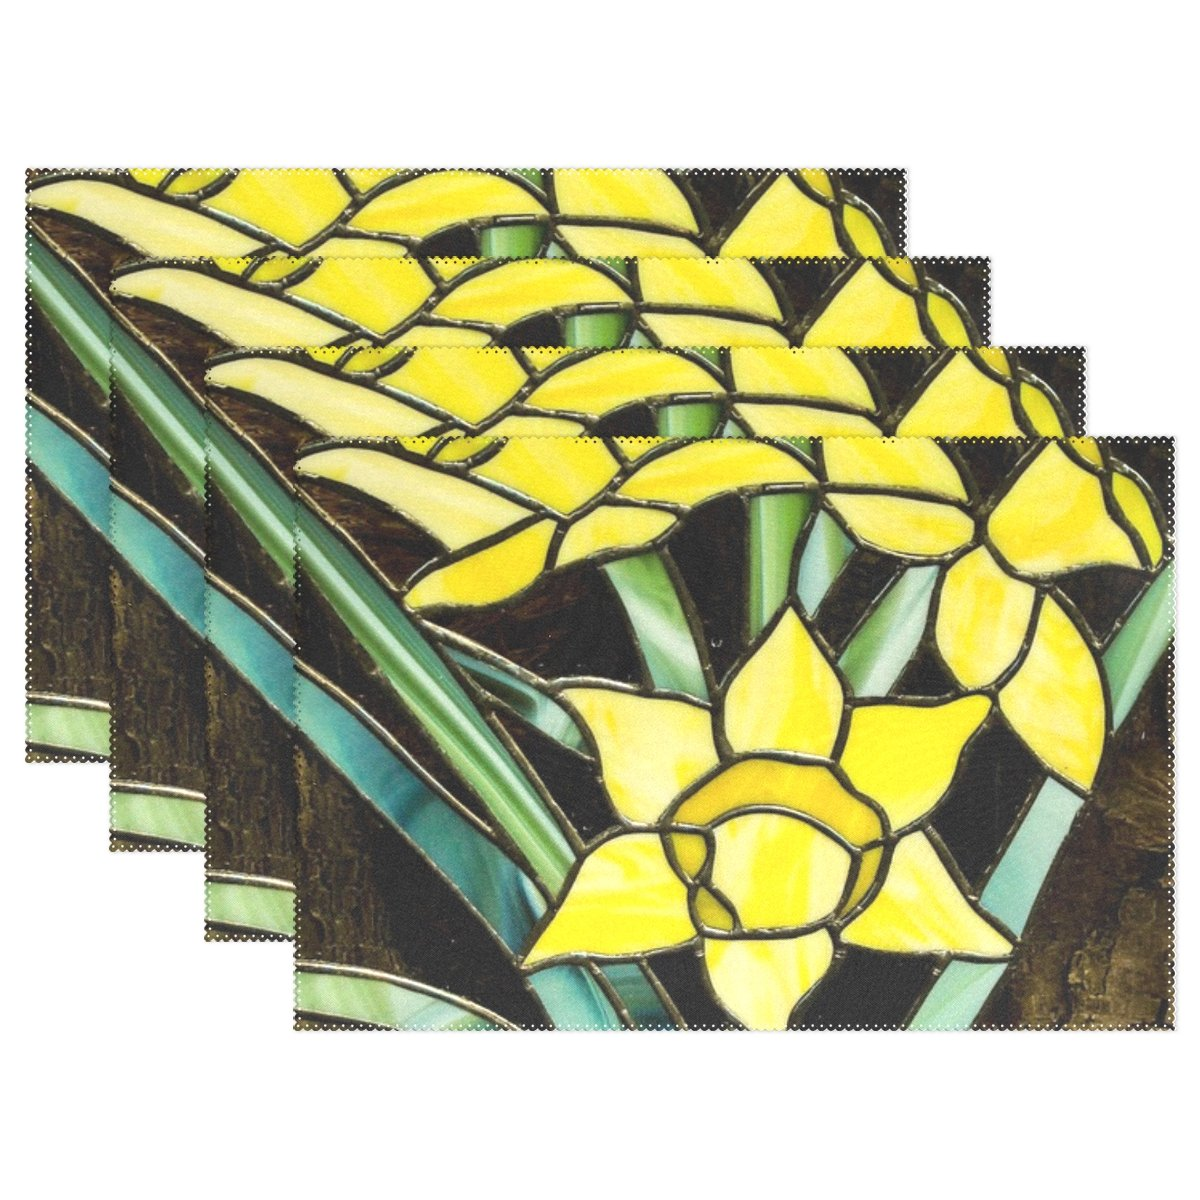 JTMOVING Stained Glass Window Yellow Flowers Pattern Placemats Set of 4 Heat Insulation Stain Resistant for Dining Table Durable Non-Slip Kitchen Table Place Mats